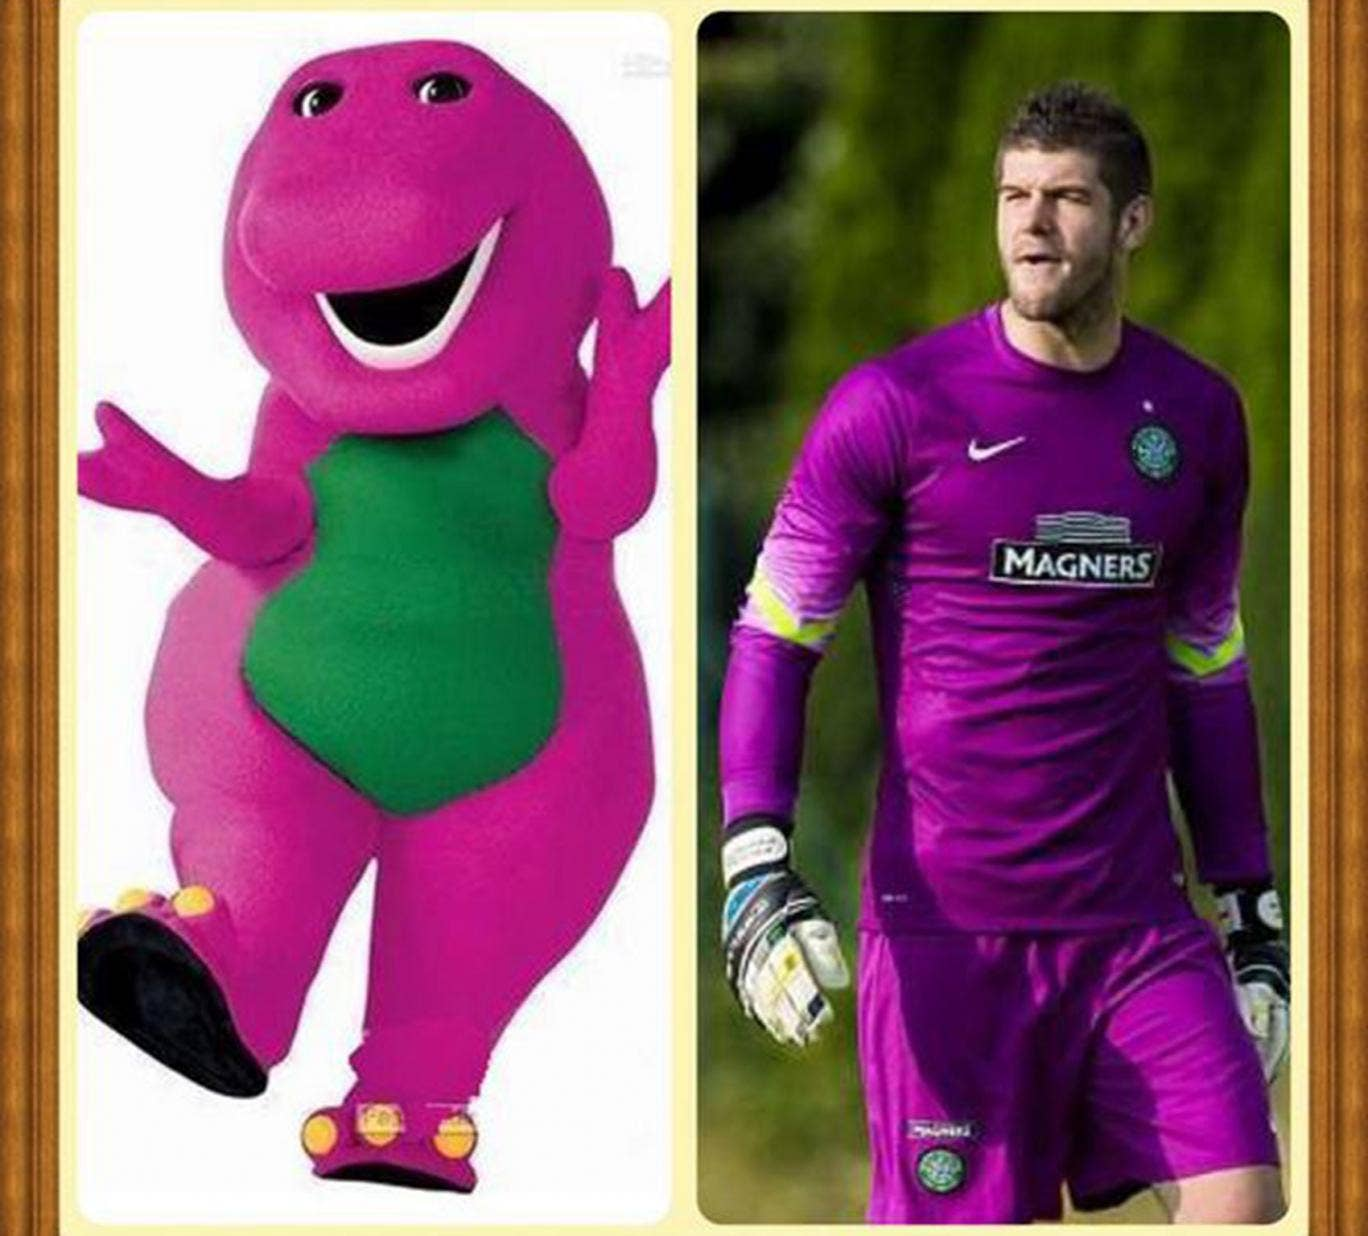 Fraser Forster posted a picture of himself and Barney the Dinosaur